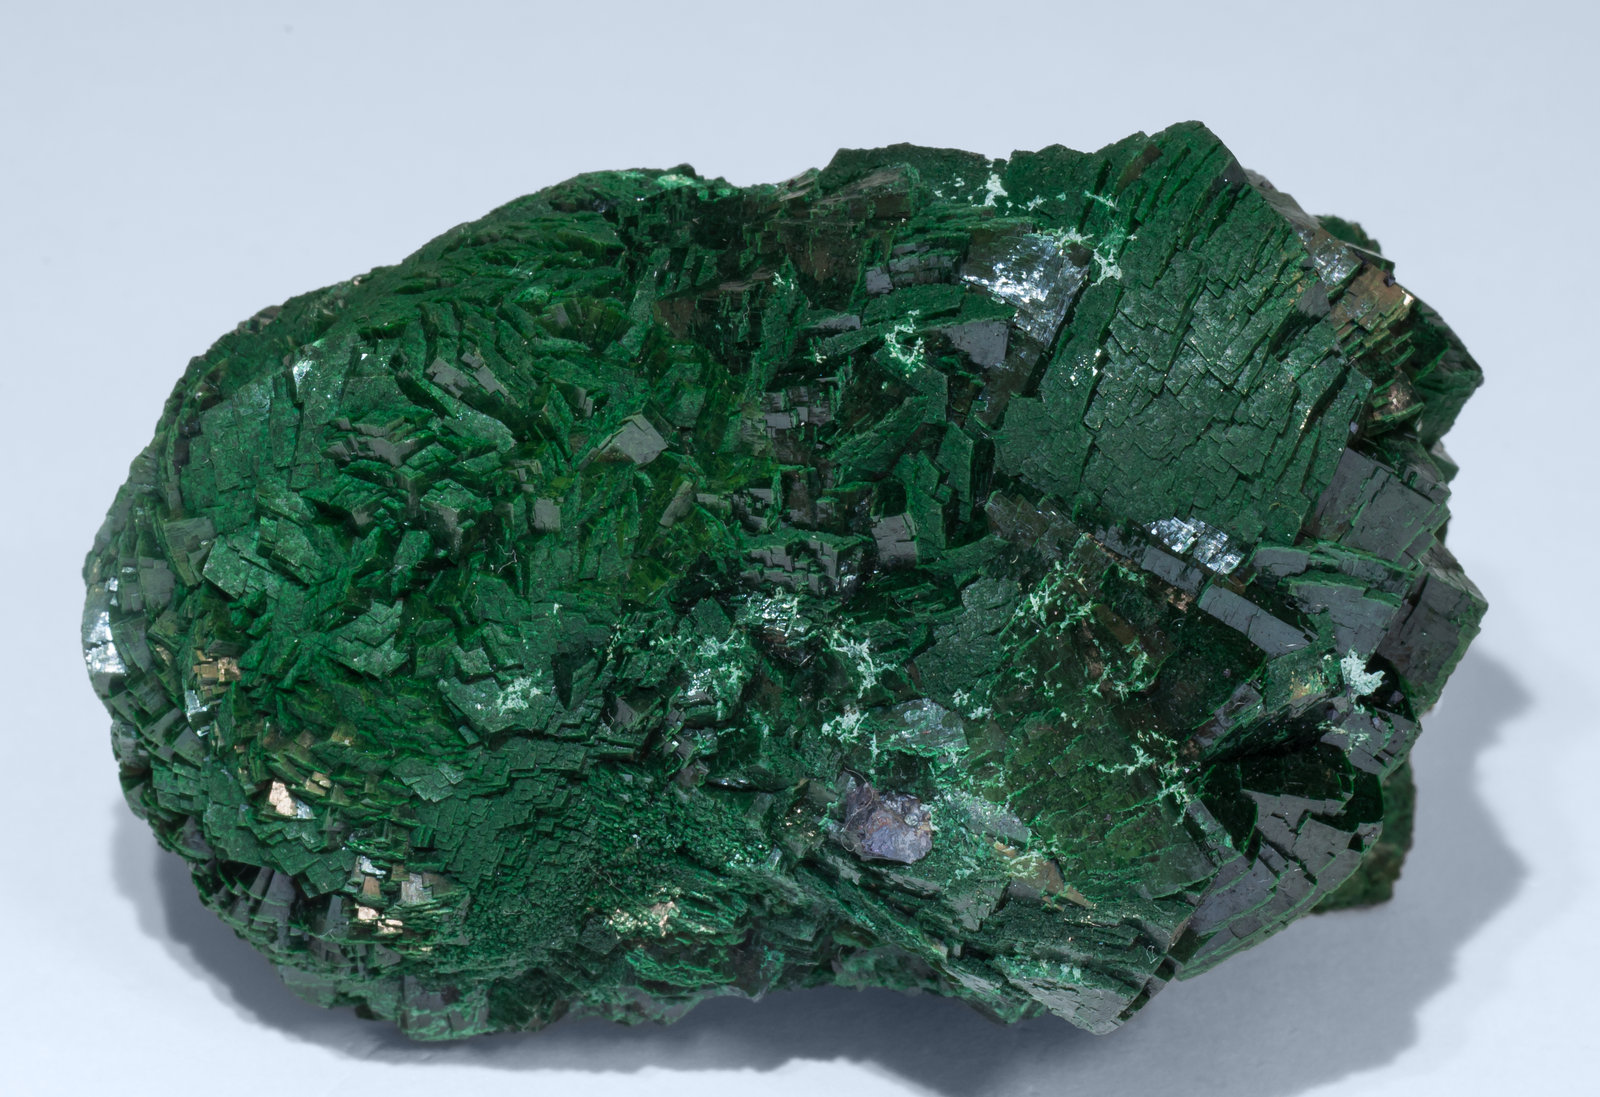 specimens/s_imagesAI8/Malachite-TQ91AI8s.jpg